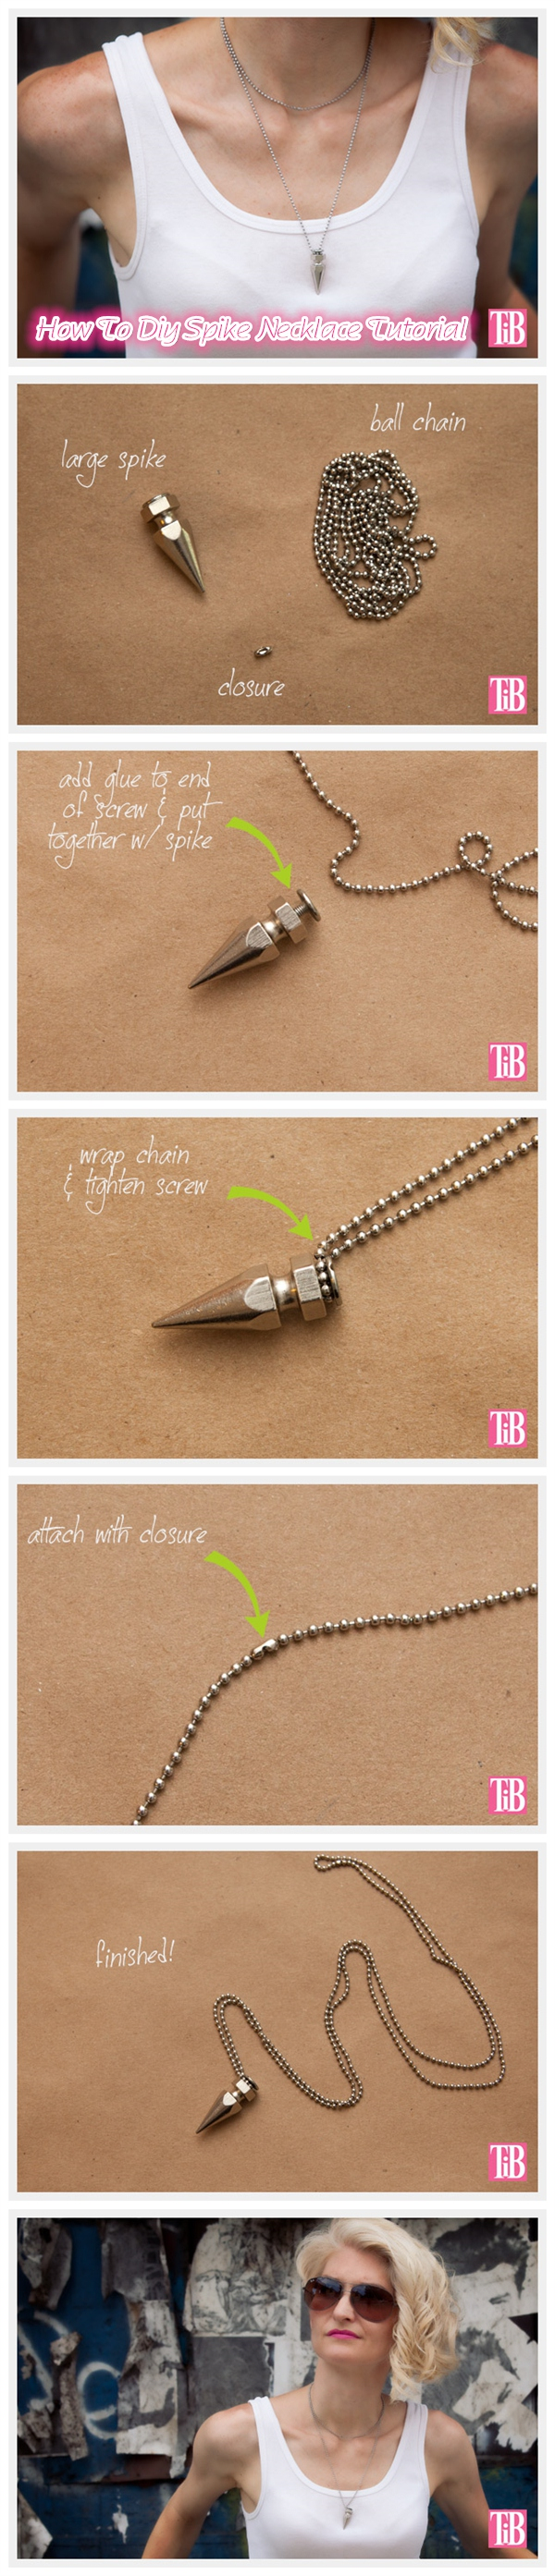 How To Diy Spike Necklace Tutorial